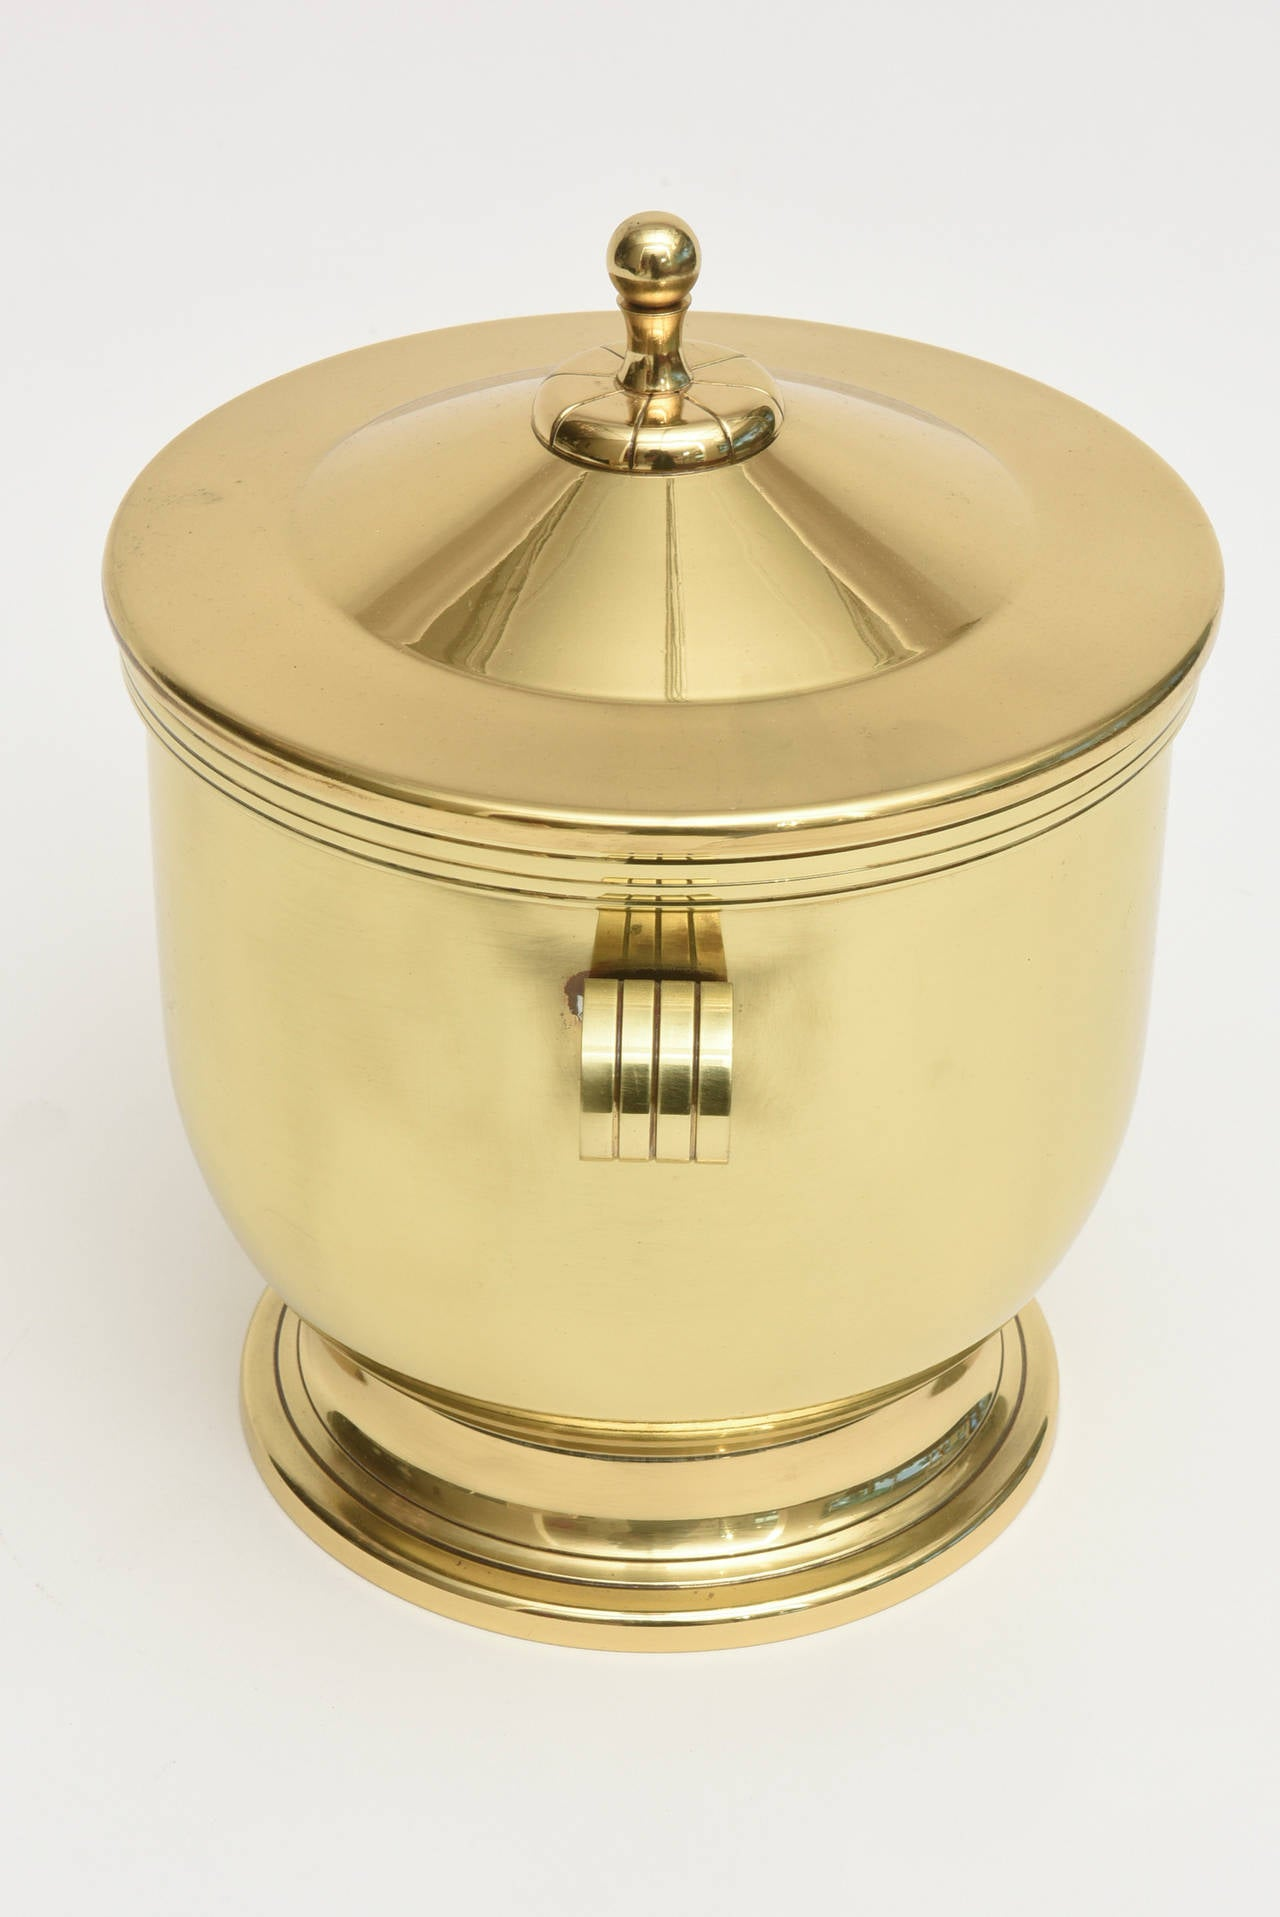 Classic Tommi Parzinger Polished Brass Ice Covered Ice Bucket For Sale 2